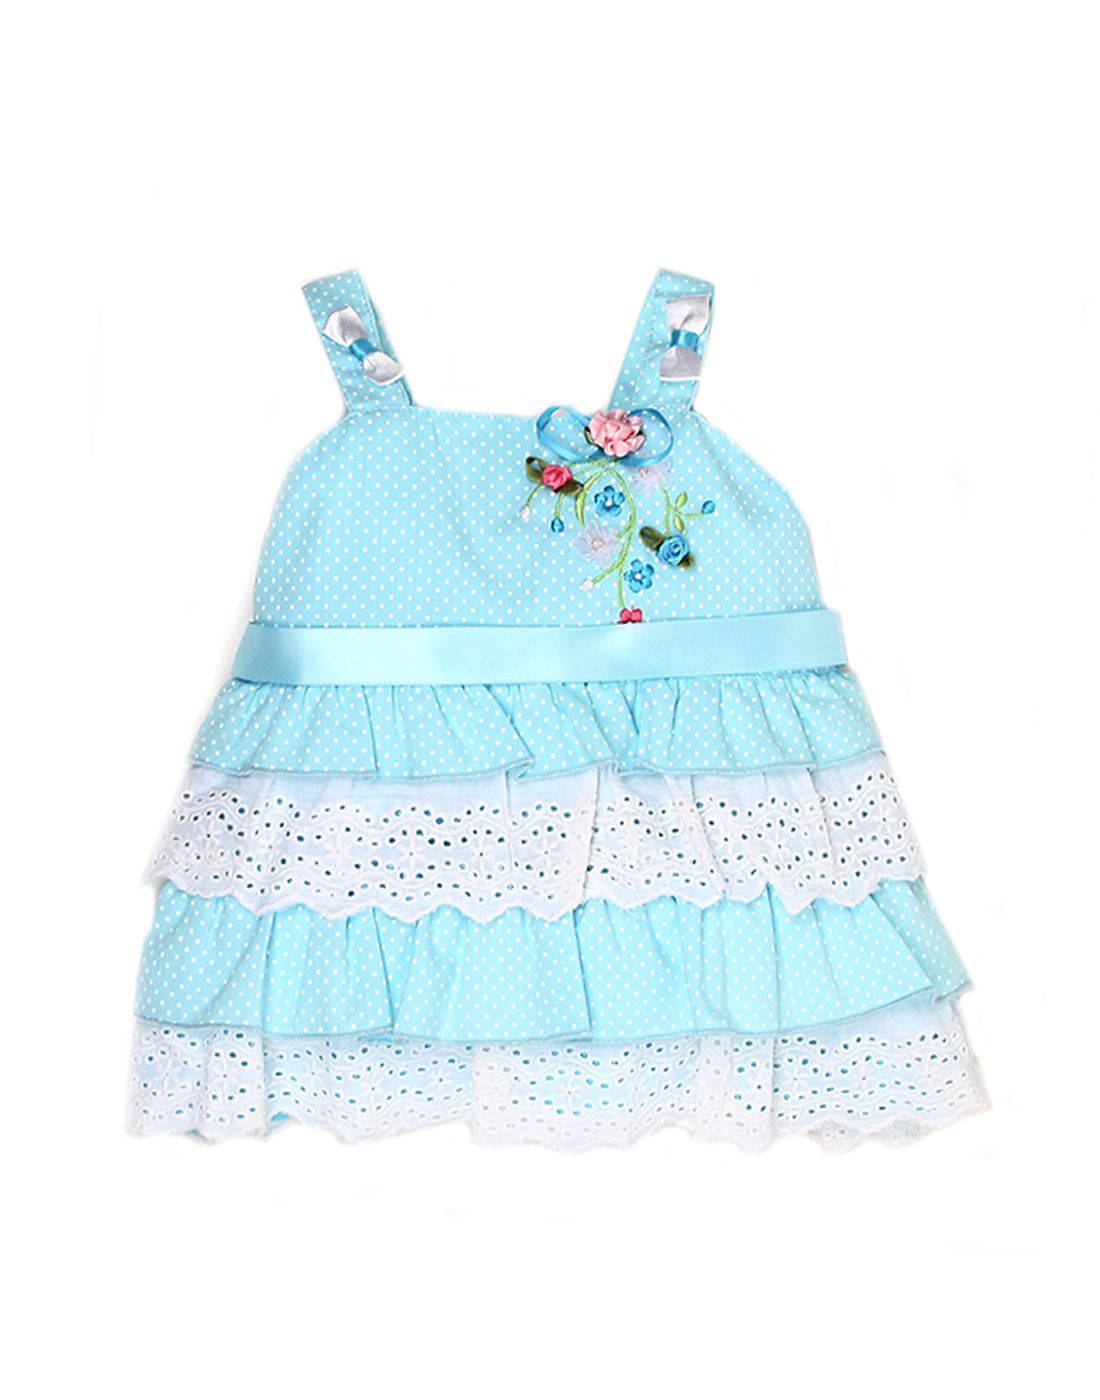 K.C.O 89 Baby Girls Casual Printed Sleeveless Frock